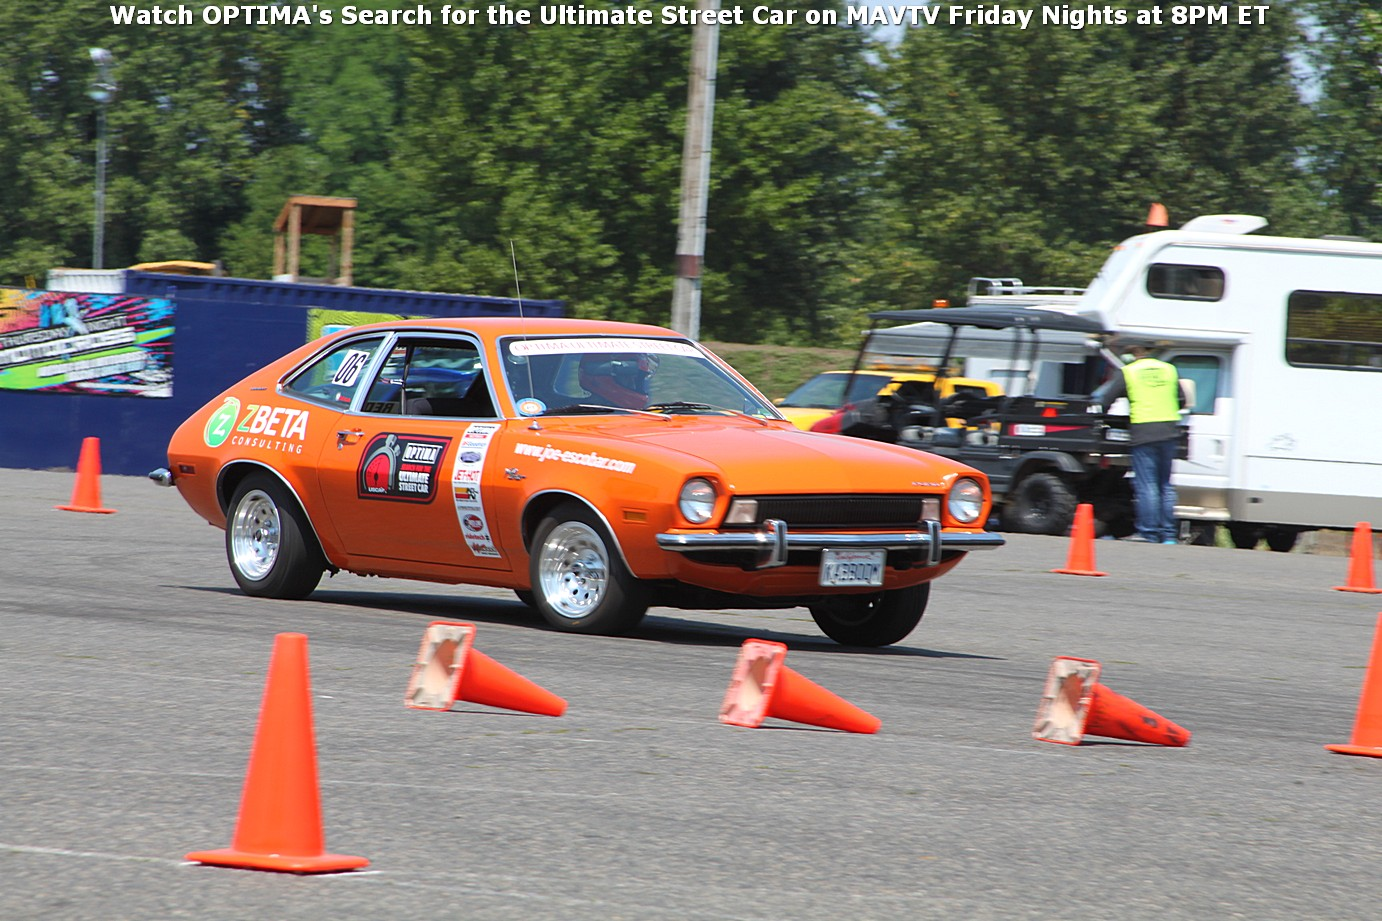 2014 OUSCI Preview- Joe Escobar's 1974 Ford Pinto